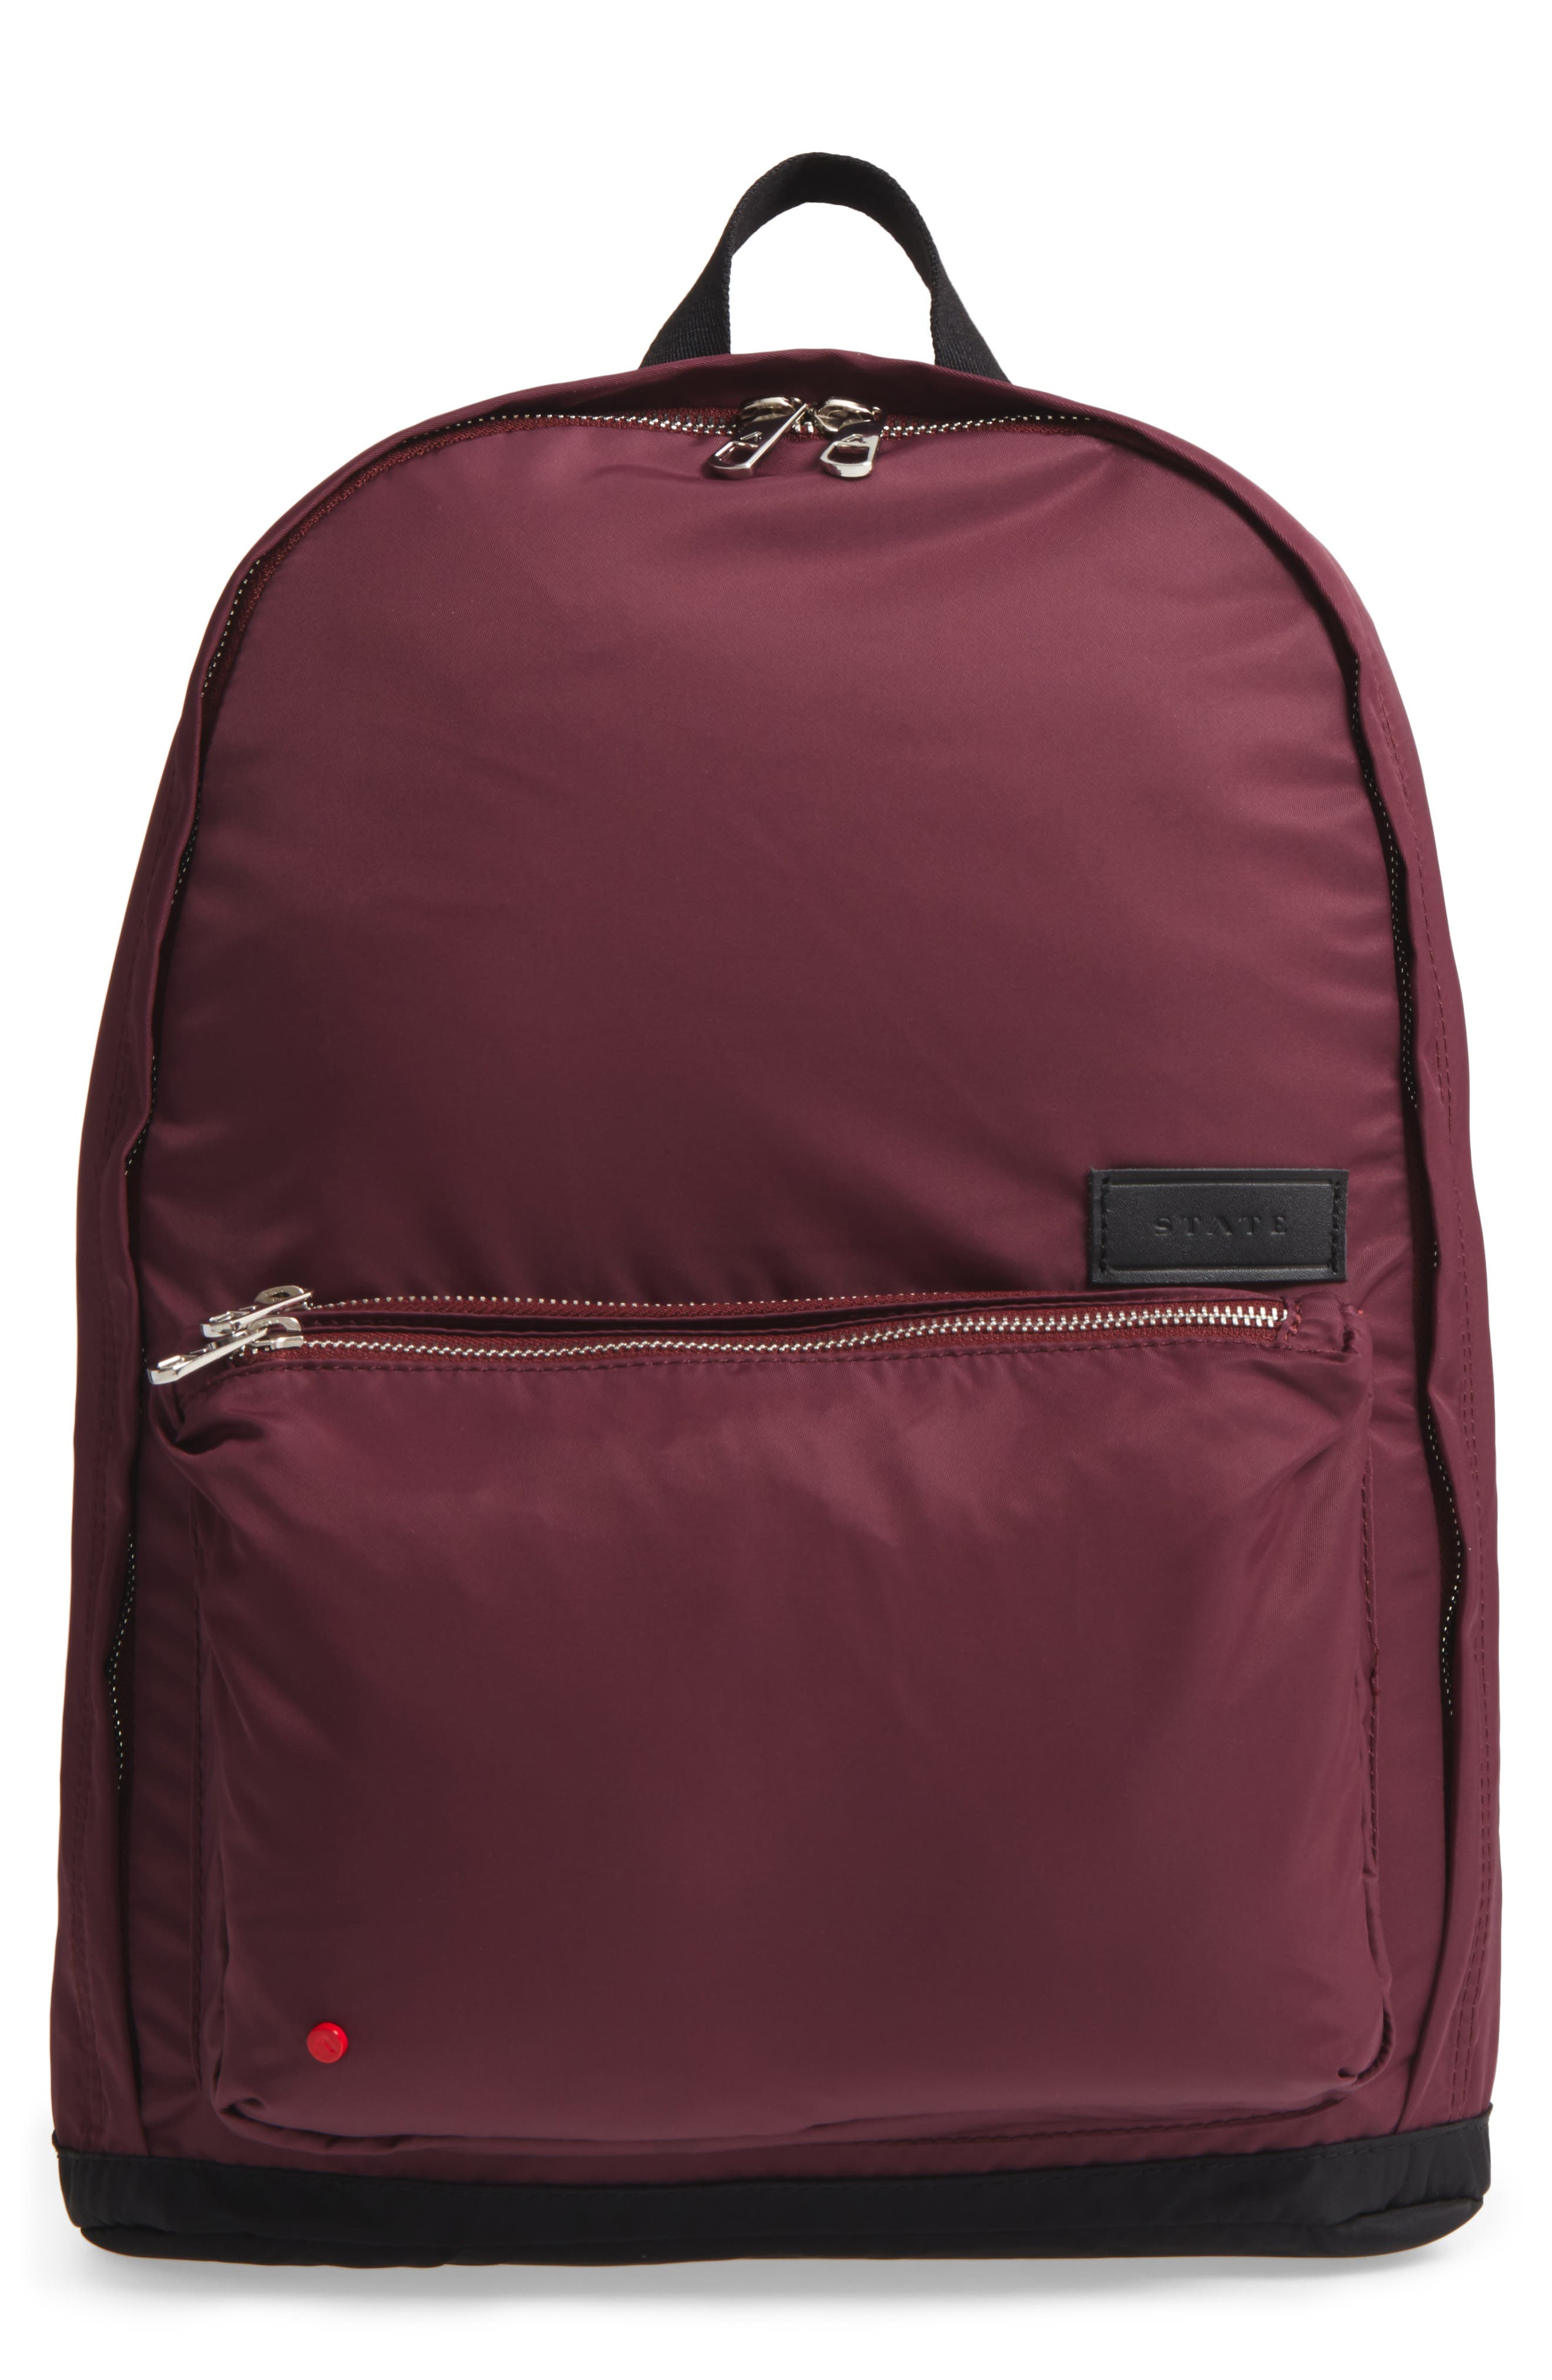 STATE Bags The Heights Adams Backpack